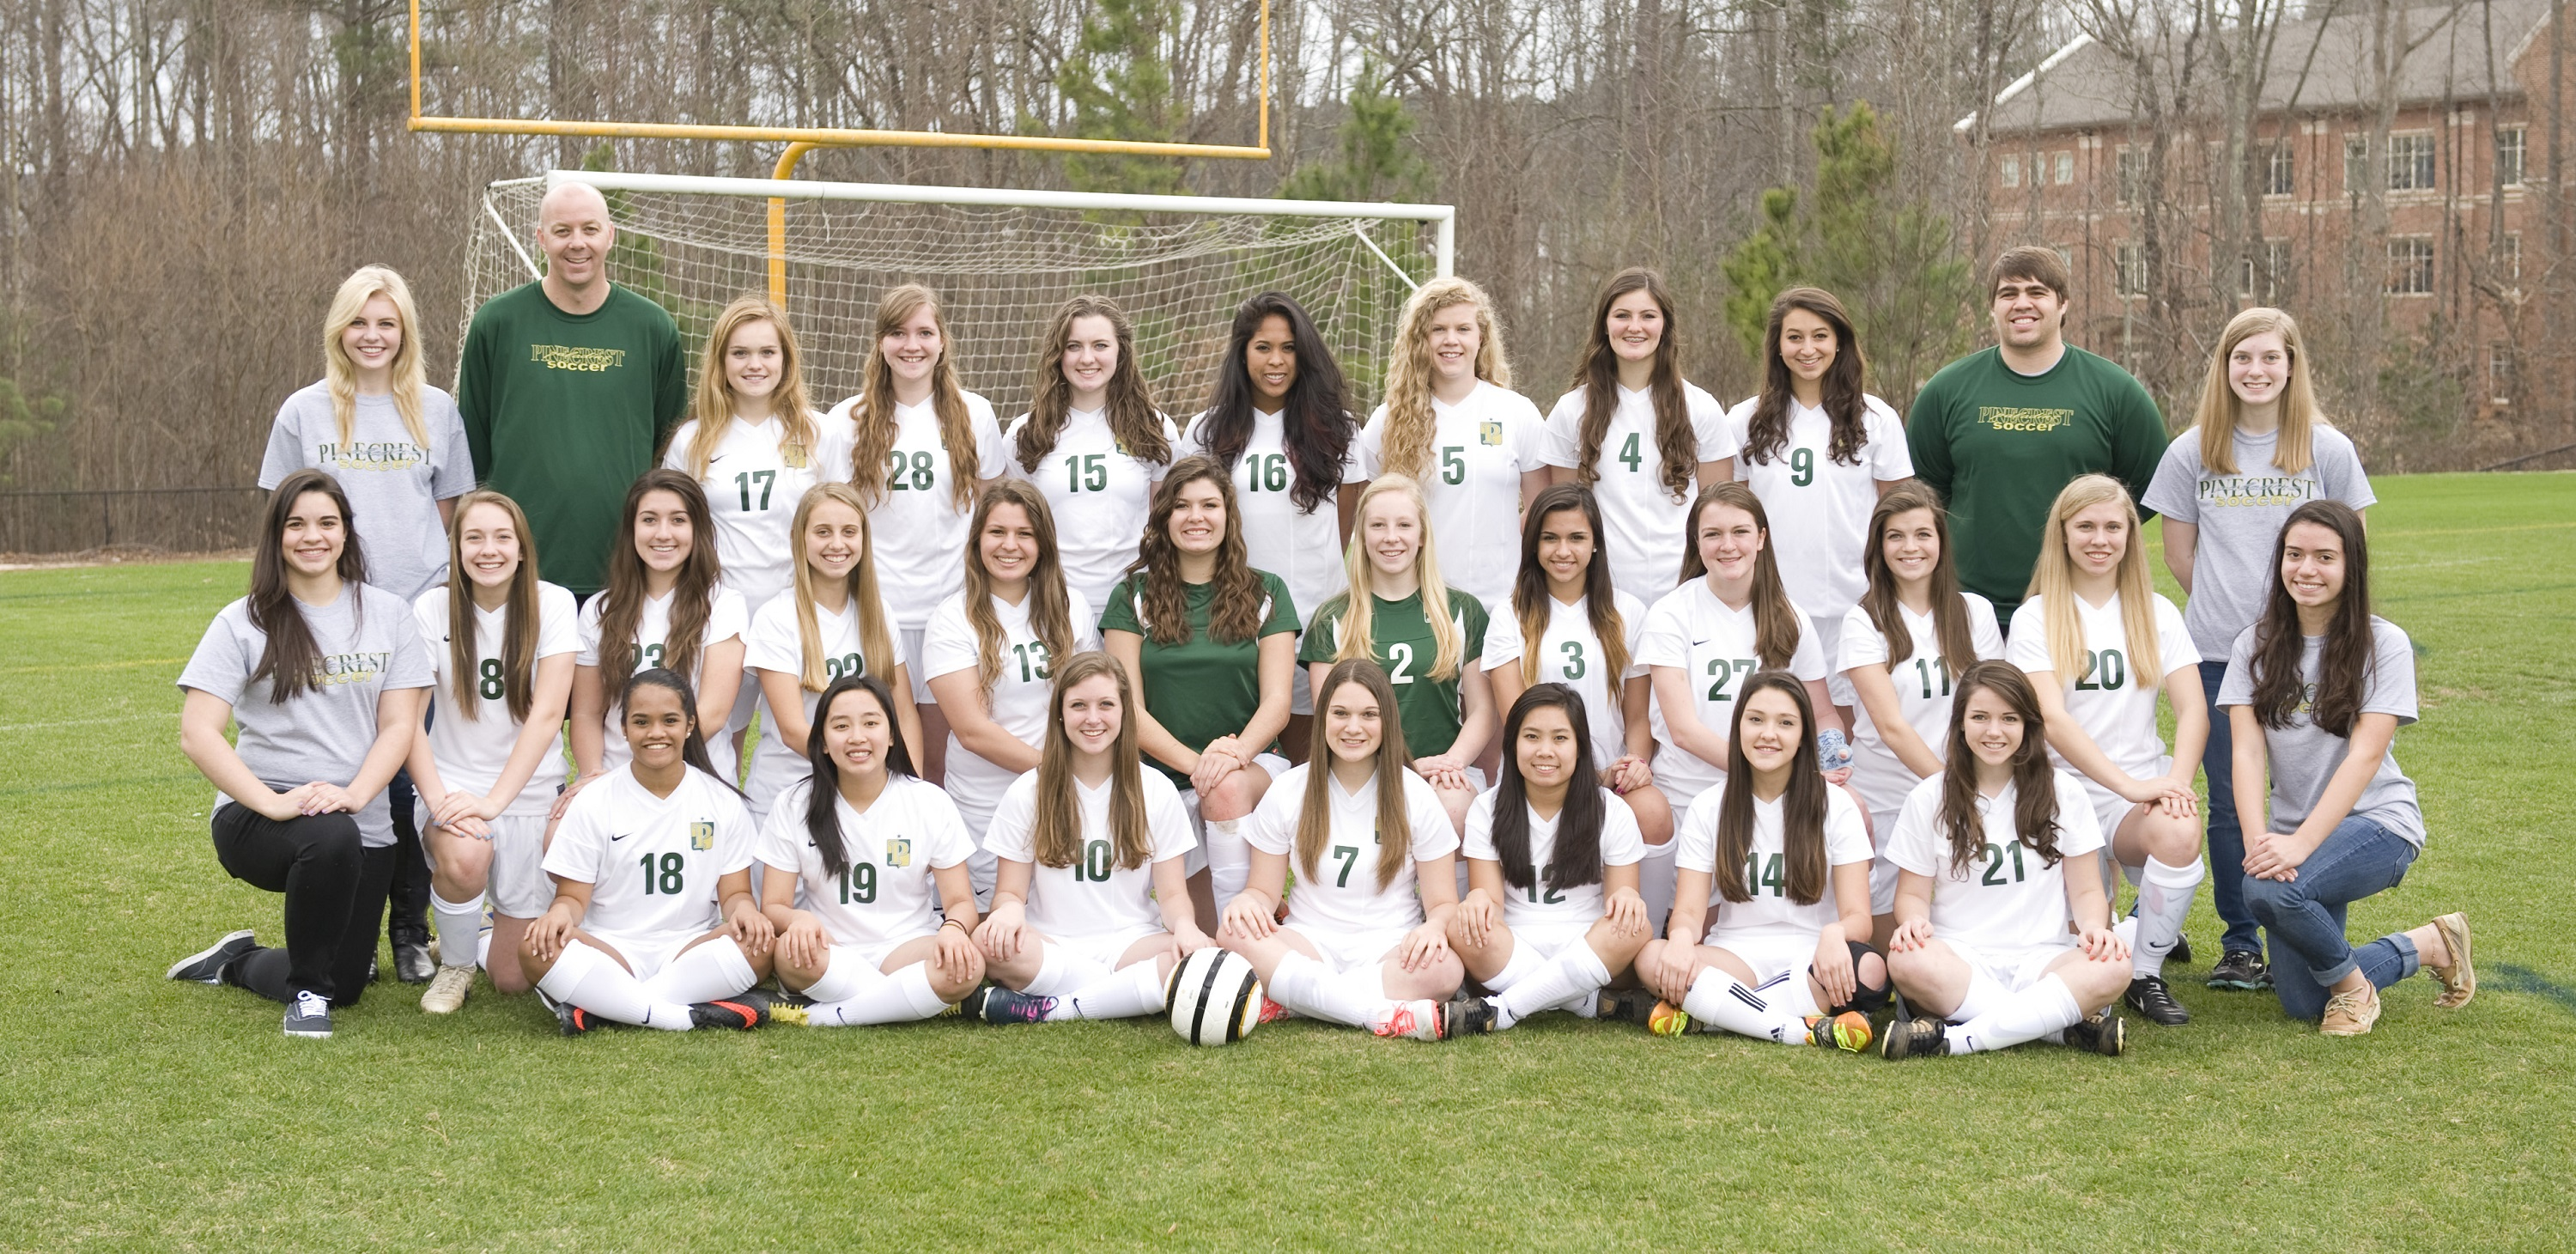 Pinecrest Academy 2014 Varsity Boys and Girls Soccer Teams Honored for Academic Excellence